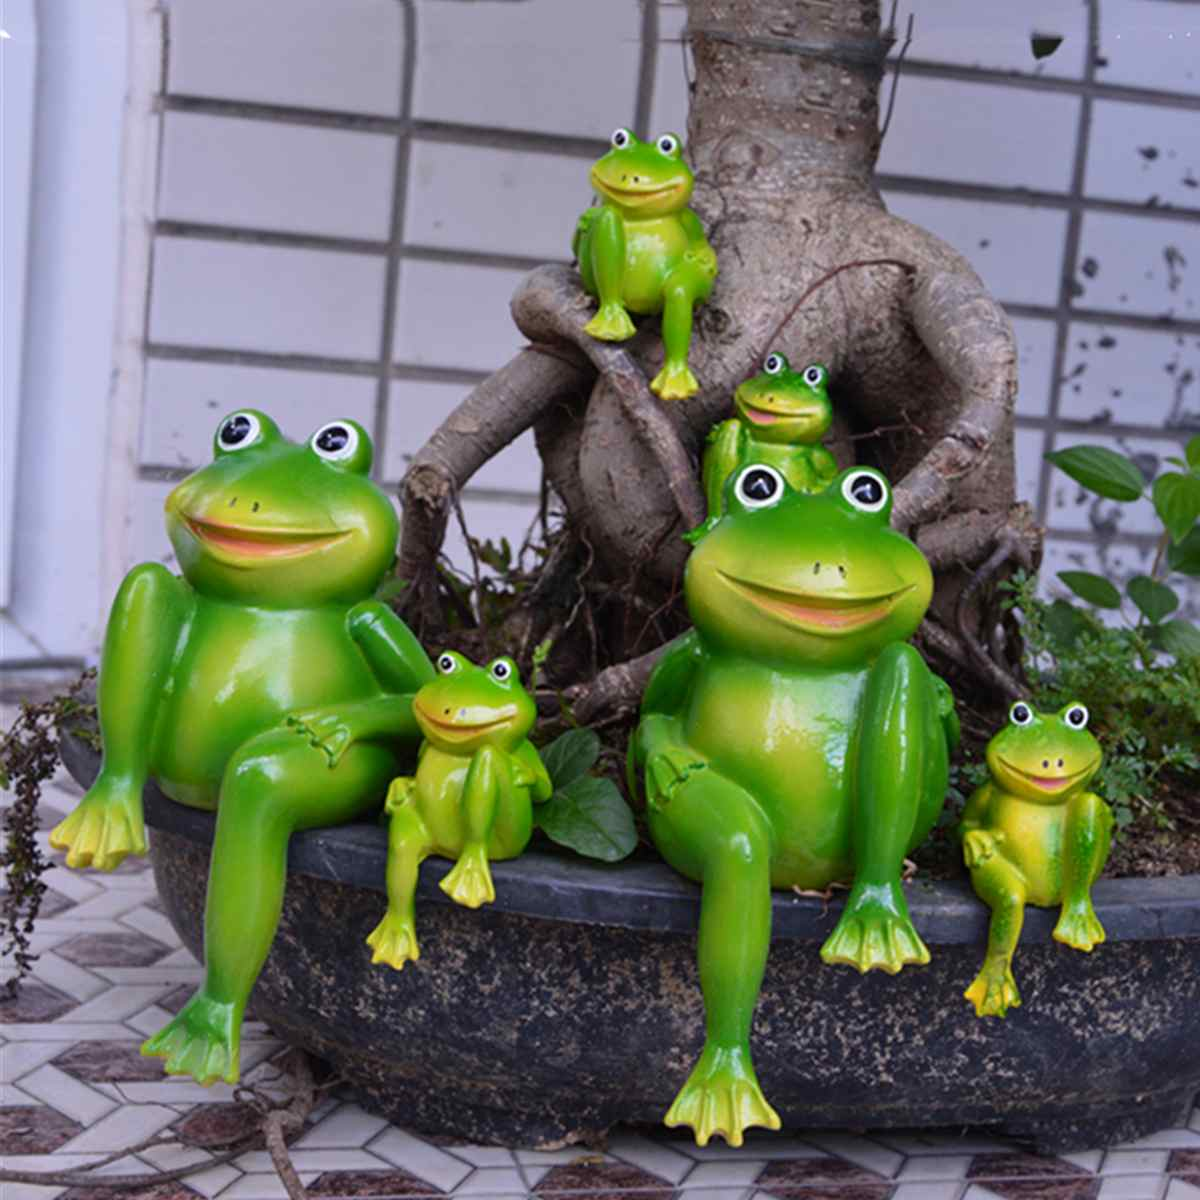 Cute Resin Sitting Frogs Statue Outdoor Garden Store Decorative Frogs Sculpture For Home Desk Garden Decor Ornament 2pcs/Set